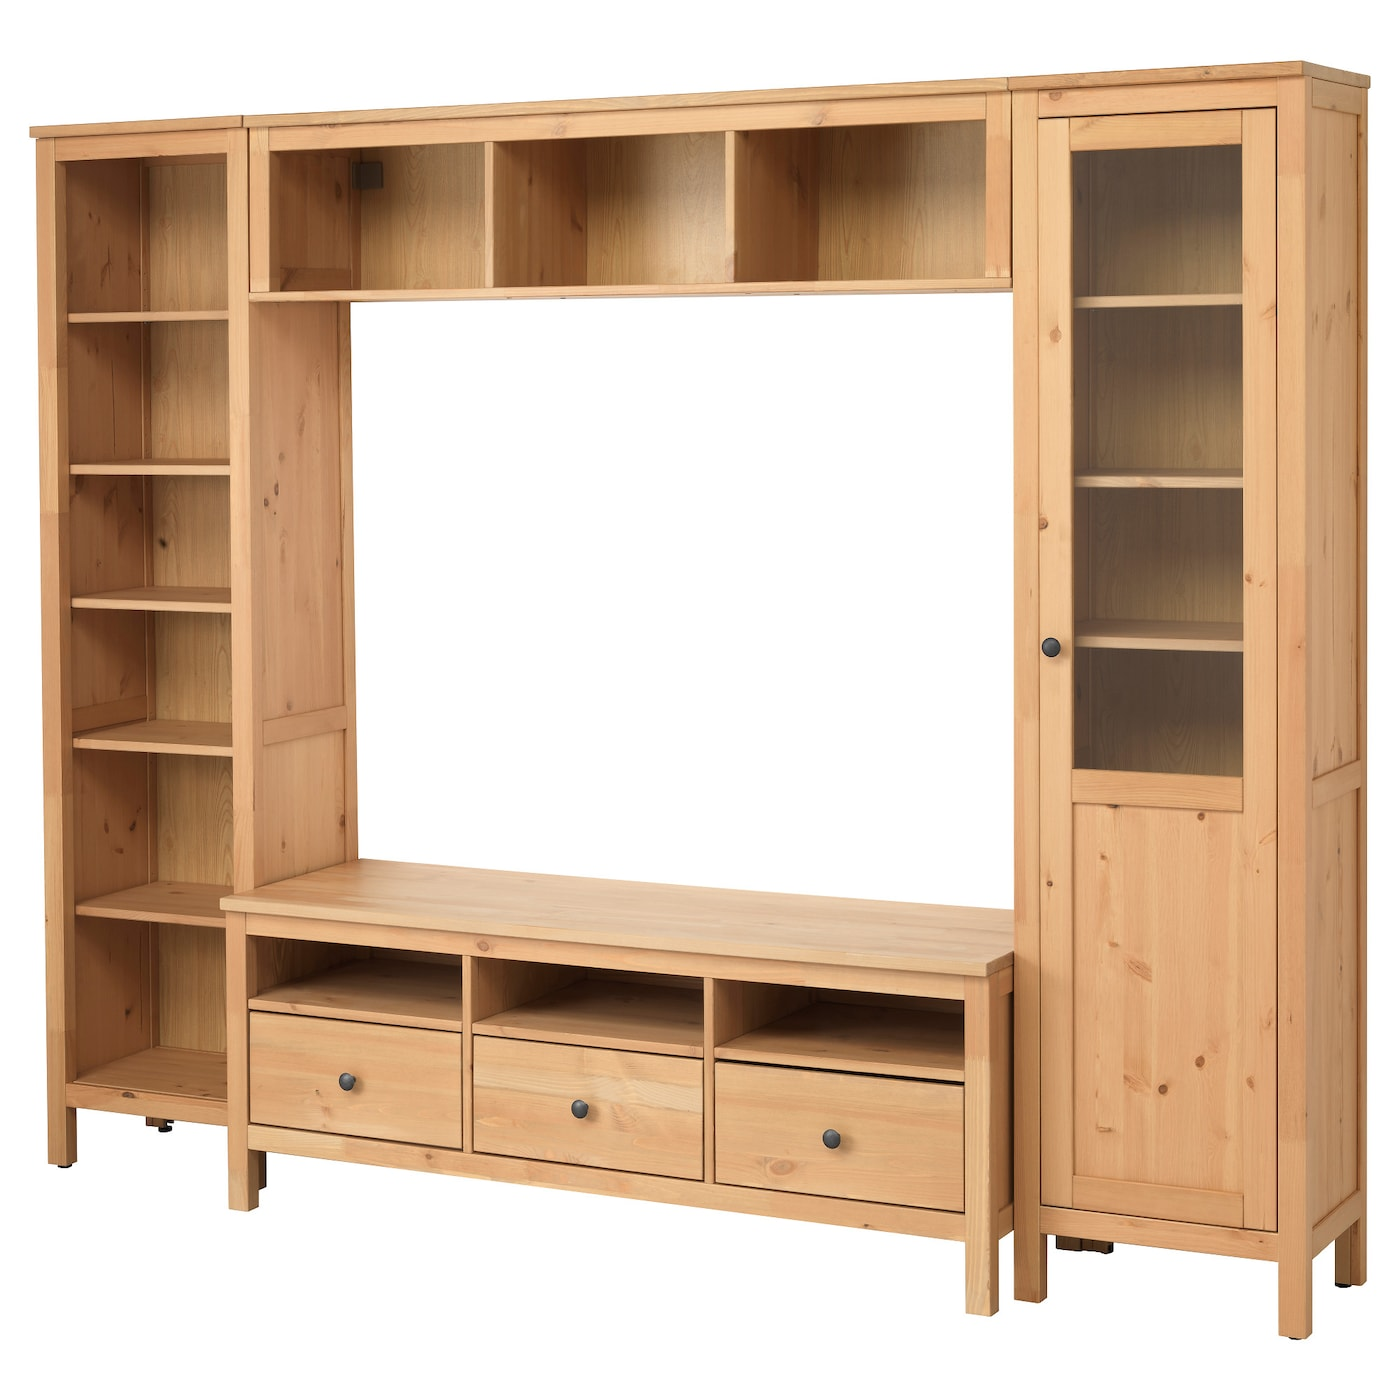 Storage Furniture Accessories Ikea Ireland